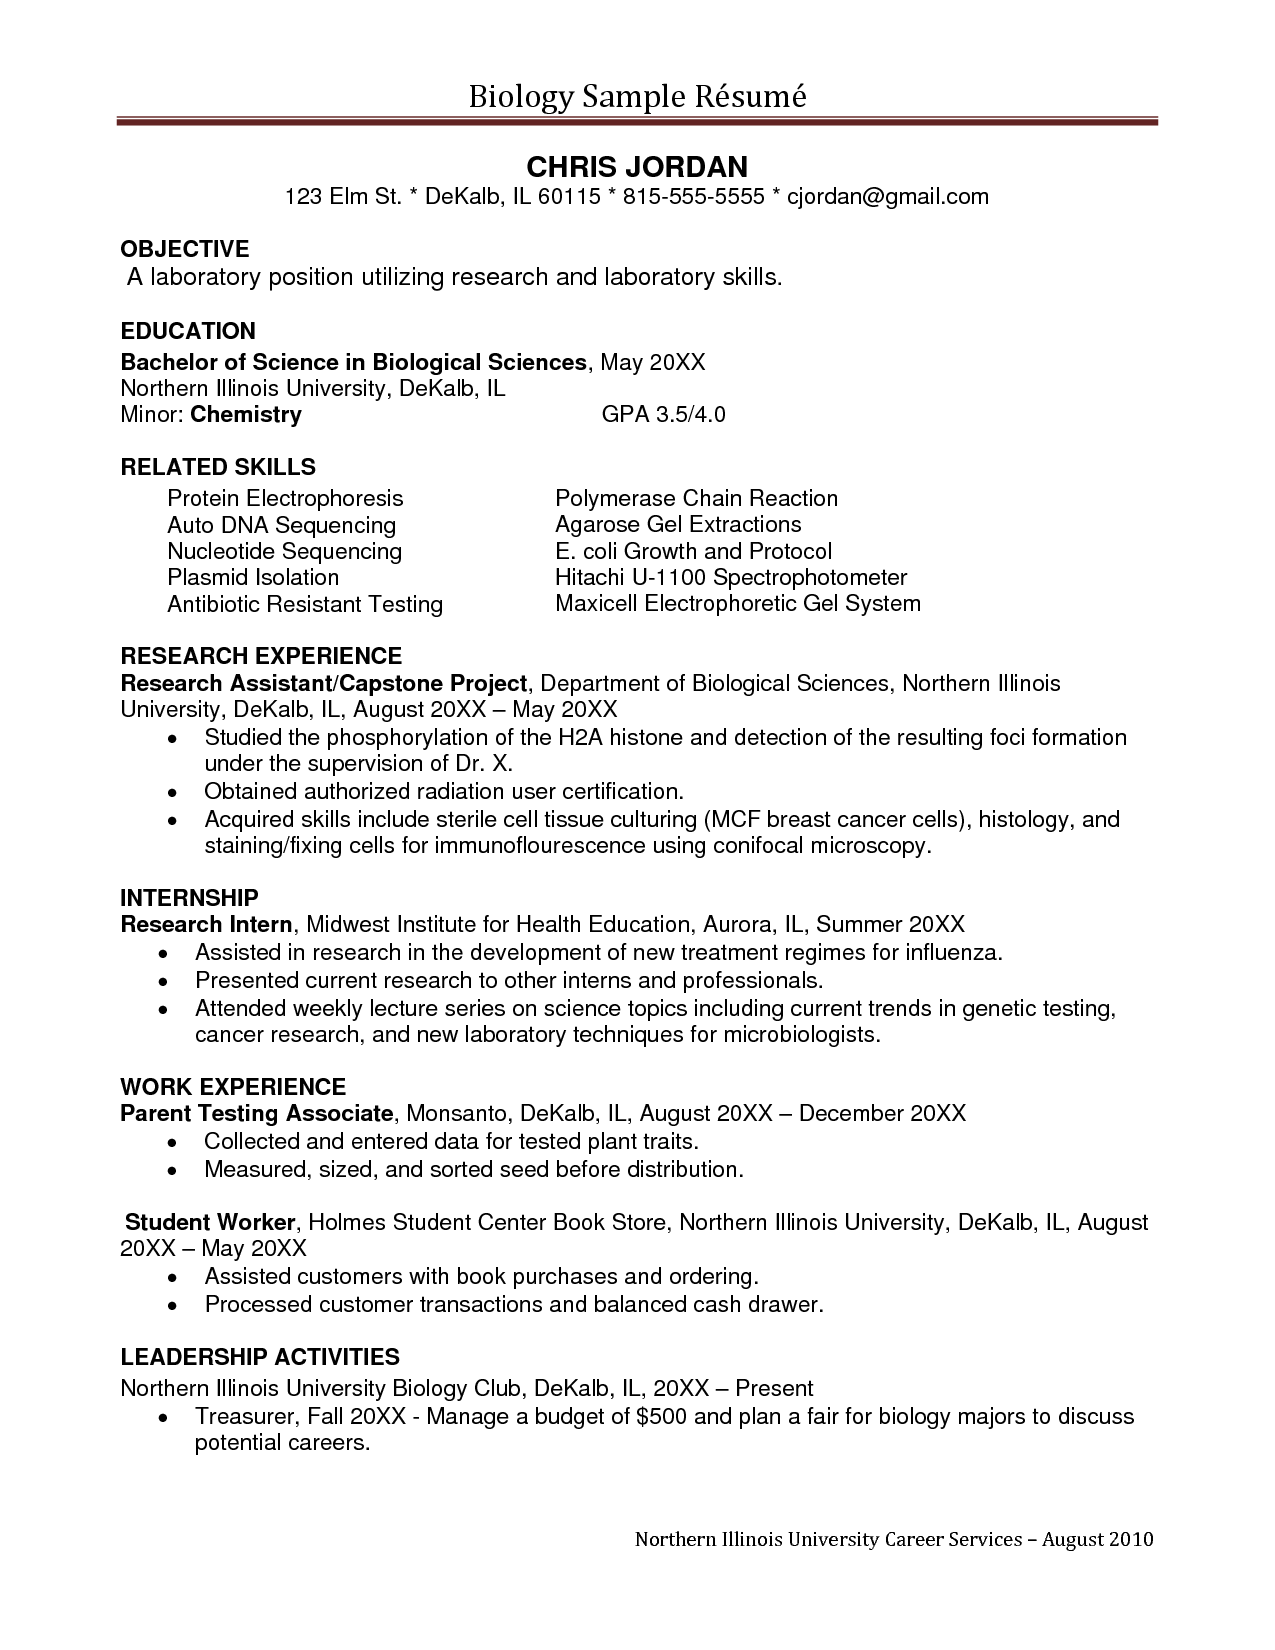 How To Write An Objective For Resume Sample Undergraduate Research Assistant Resume Sampleĺ